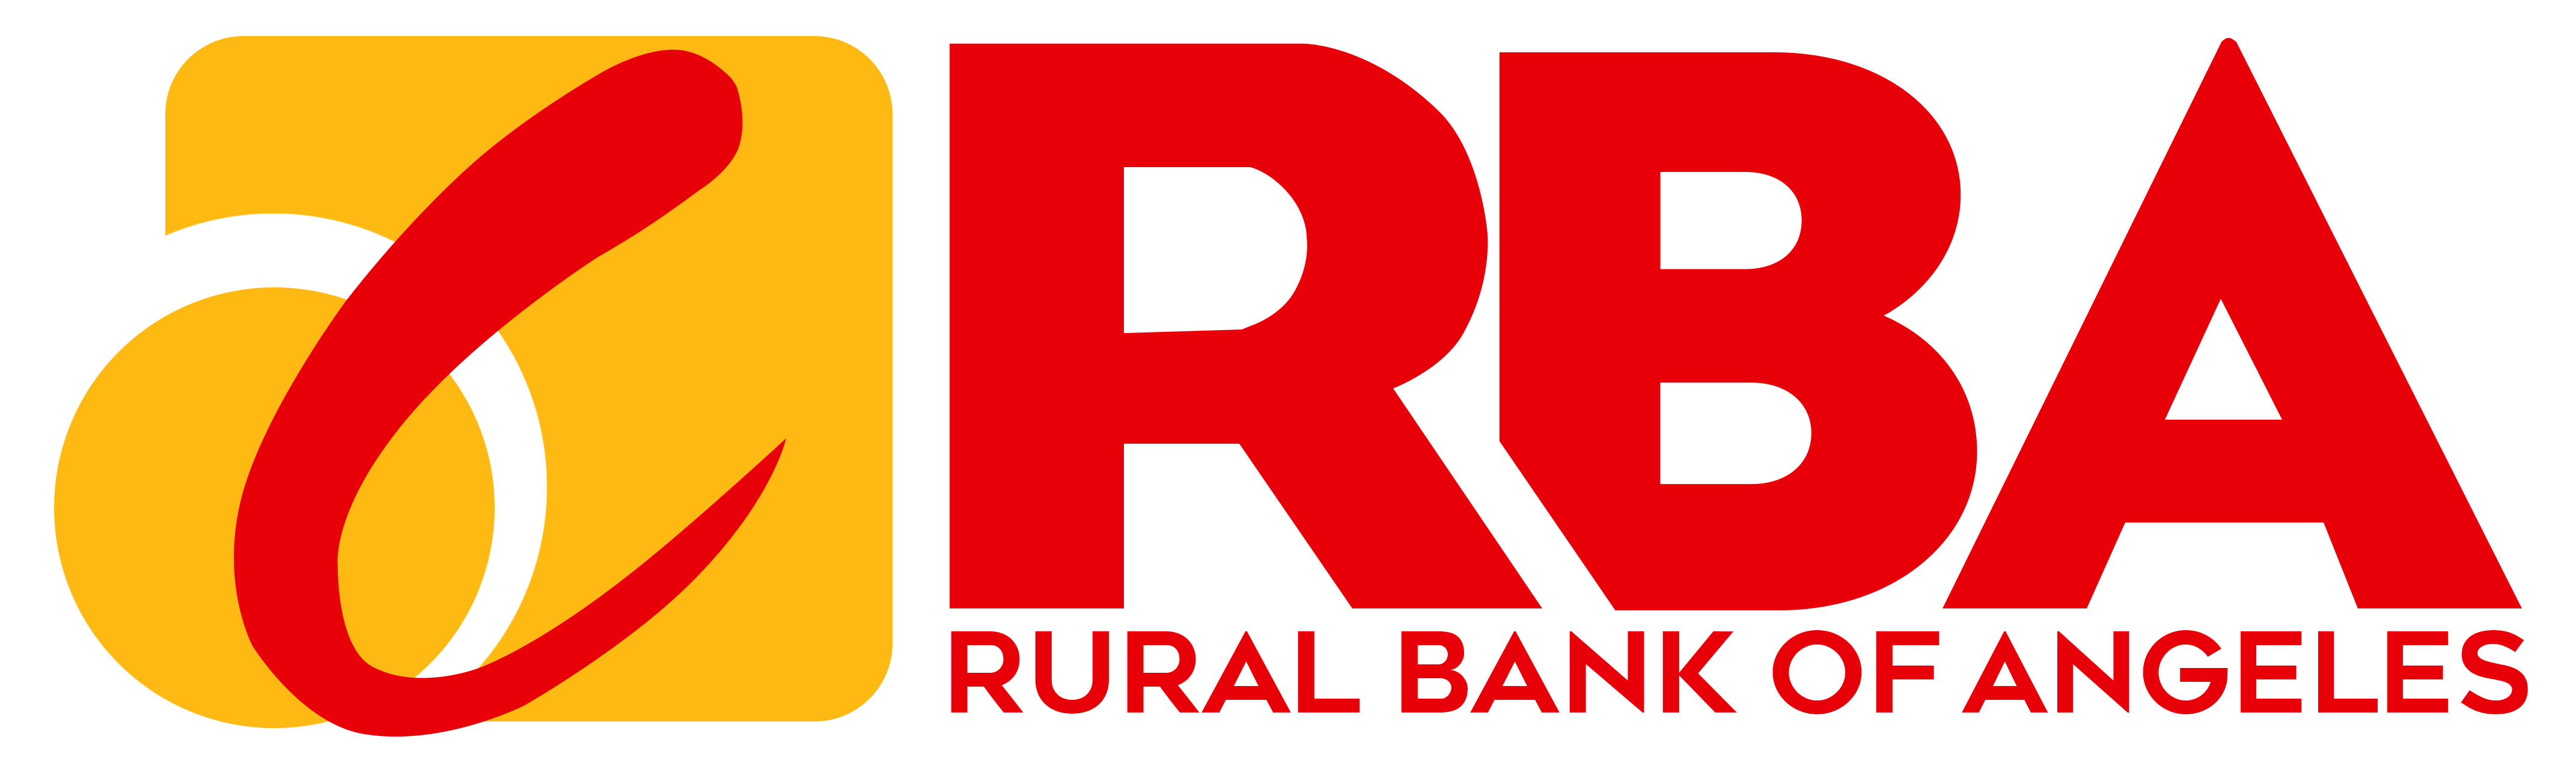 Rural Bank of Angeles, Inc.